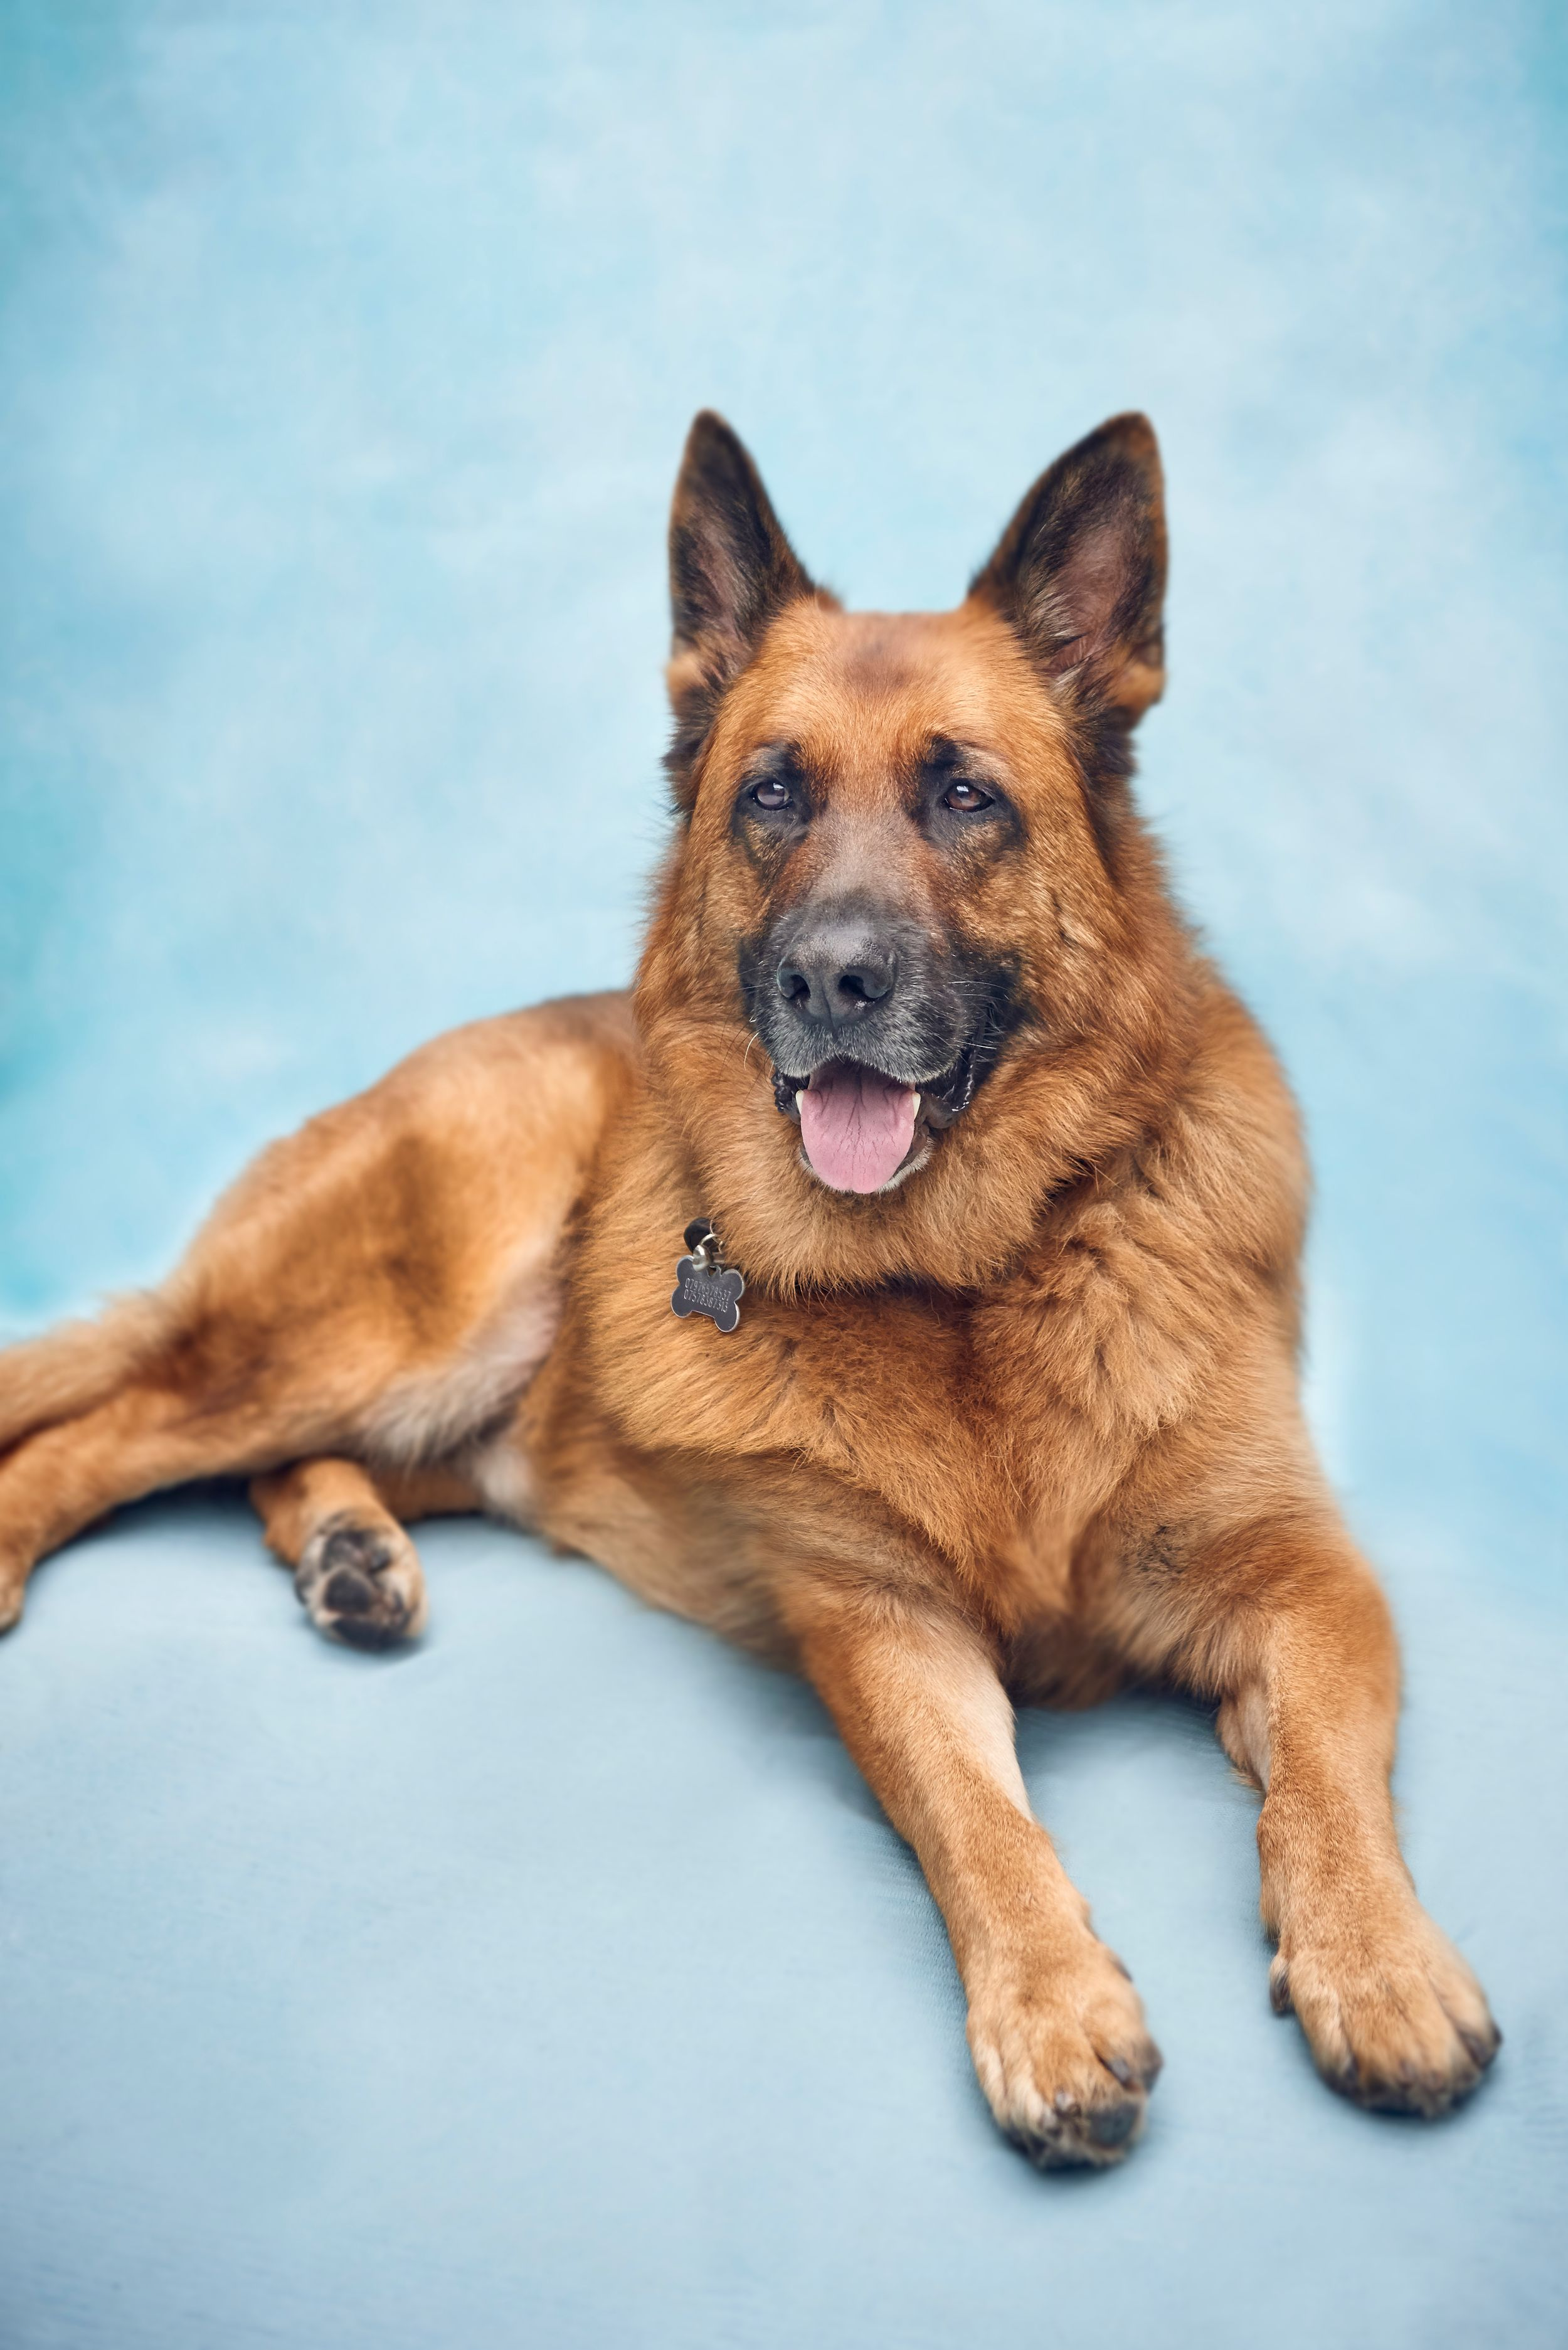 Alsatian dog on blue background, Sarah Lake Photography